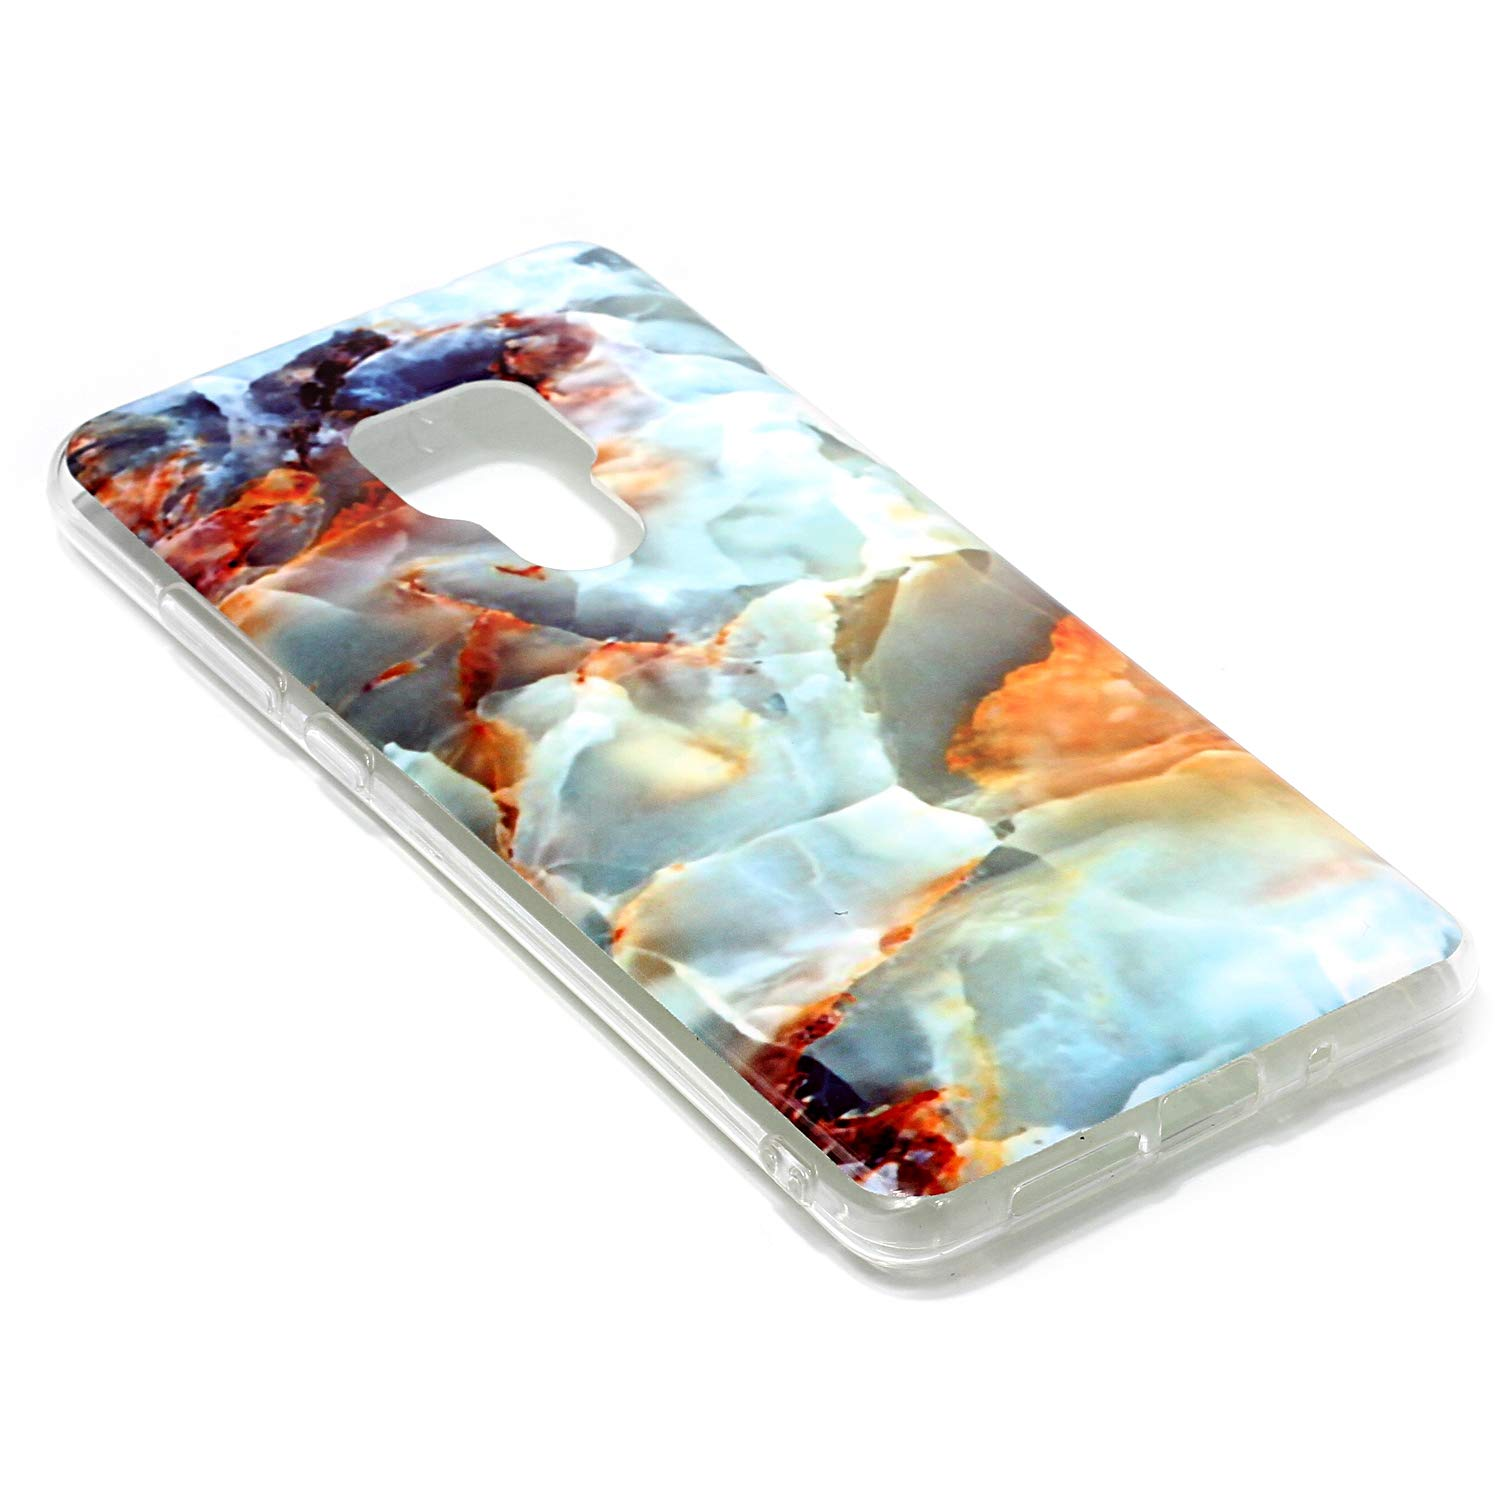 for Huawei Mate 20 Marble Case with Screen Protector,Unique Pattern Design Skin Ultra Thin Slim Fit Soft Gel Silicone Case,QFFUN Shockproof Anti-Scratch Protective Back Cover - Fire Cloud by QFFUN (Image #3)